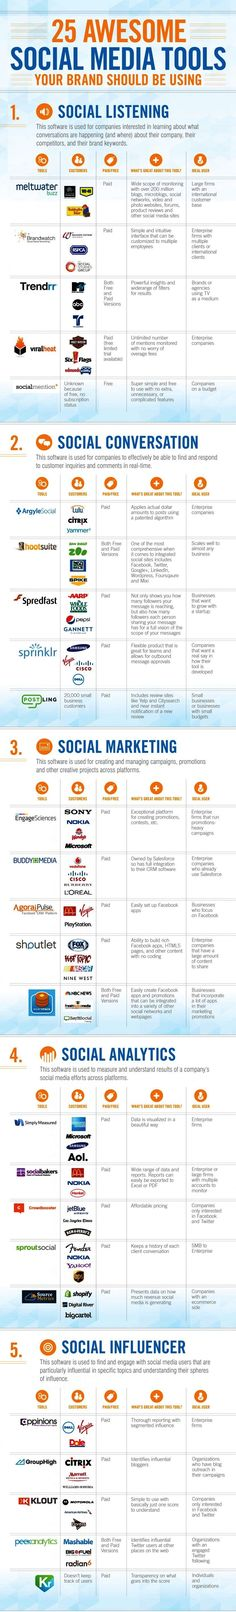 25 Awesome Social Media Tools - great infograhic highlighting valuable social listening, conversation, marketing, analytics, and influencer tools. Inbound Marketing, Mundo Marketing, Marketing Trends, Marketing En Internet, Marketing Online, Marketing Technology, Marketing Tools, Content Marketing, Social Media Marketing